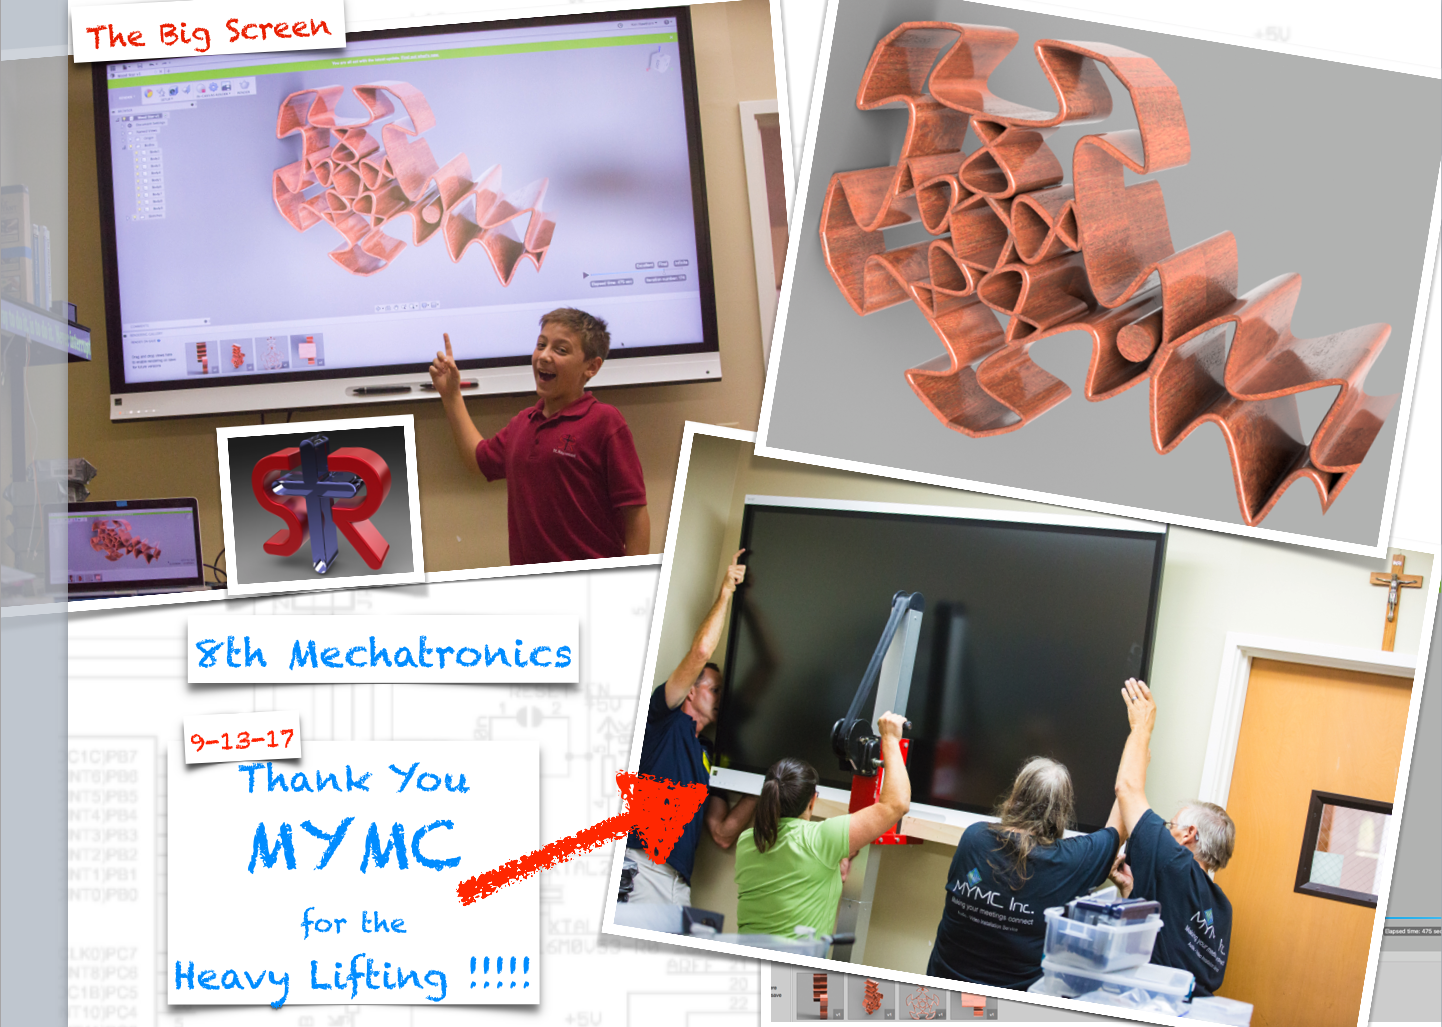 Above: A 7th grade student shares a rendering on the big screen (left). Thank you to MYMC Inc. for pushing the install process so fast so we could use the screens immediately (right).